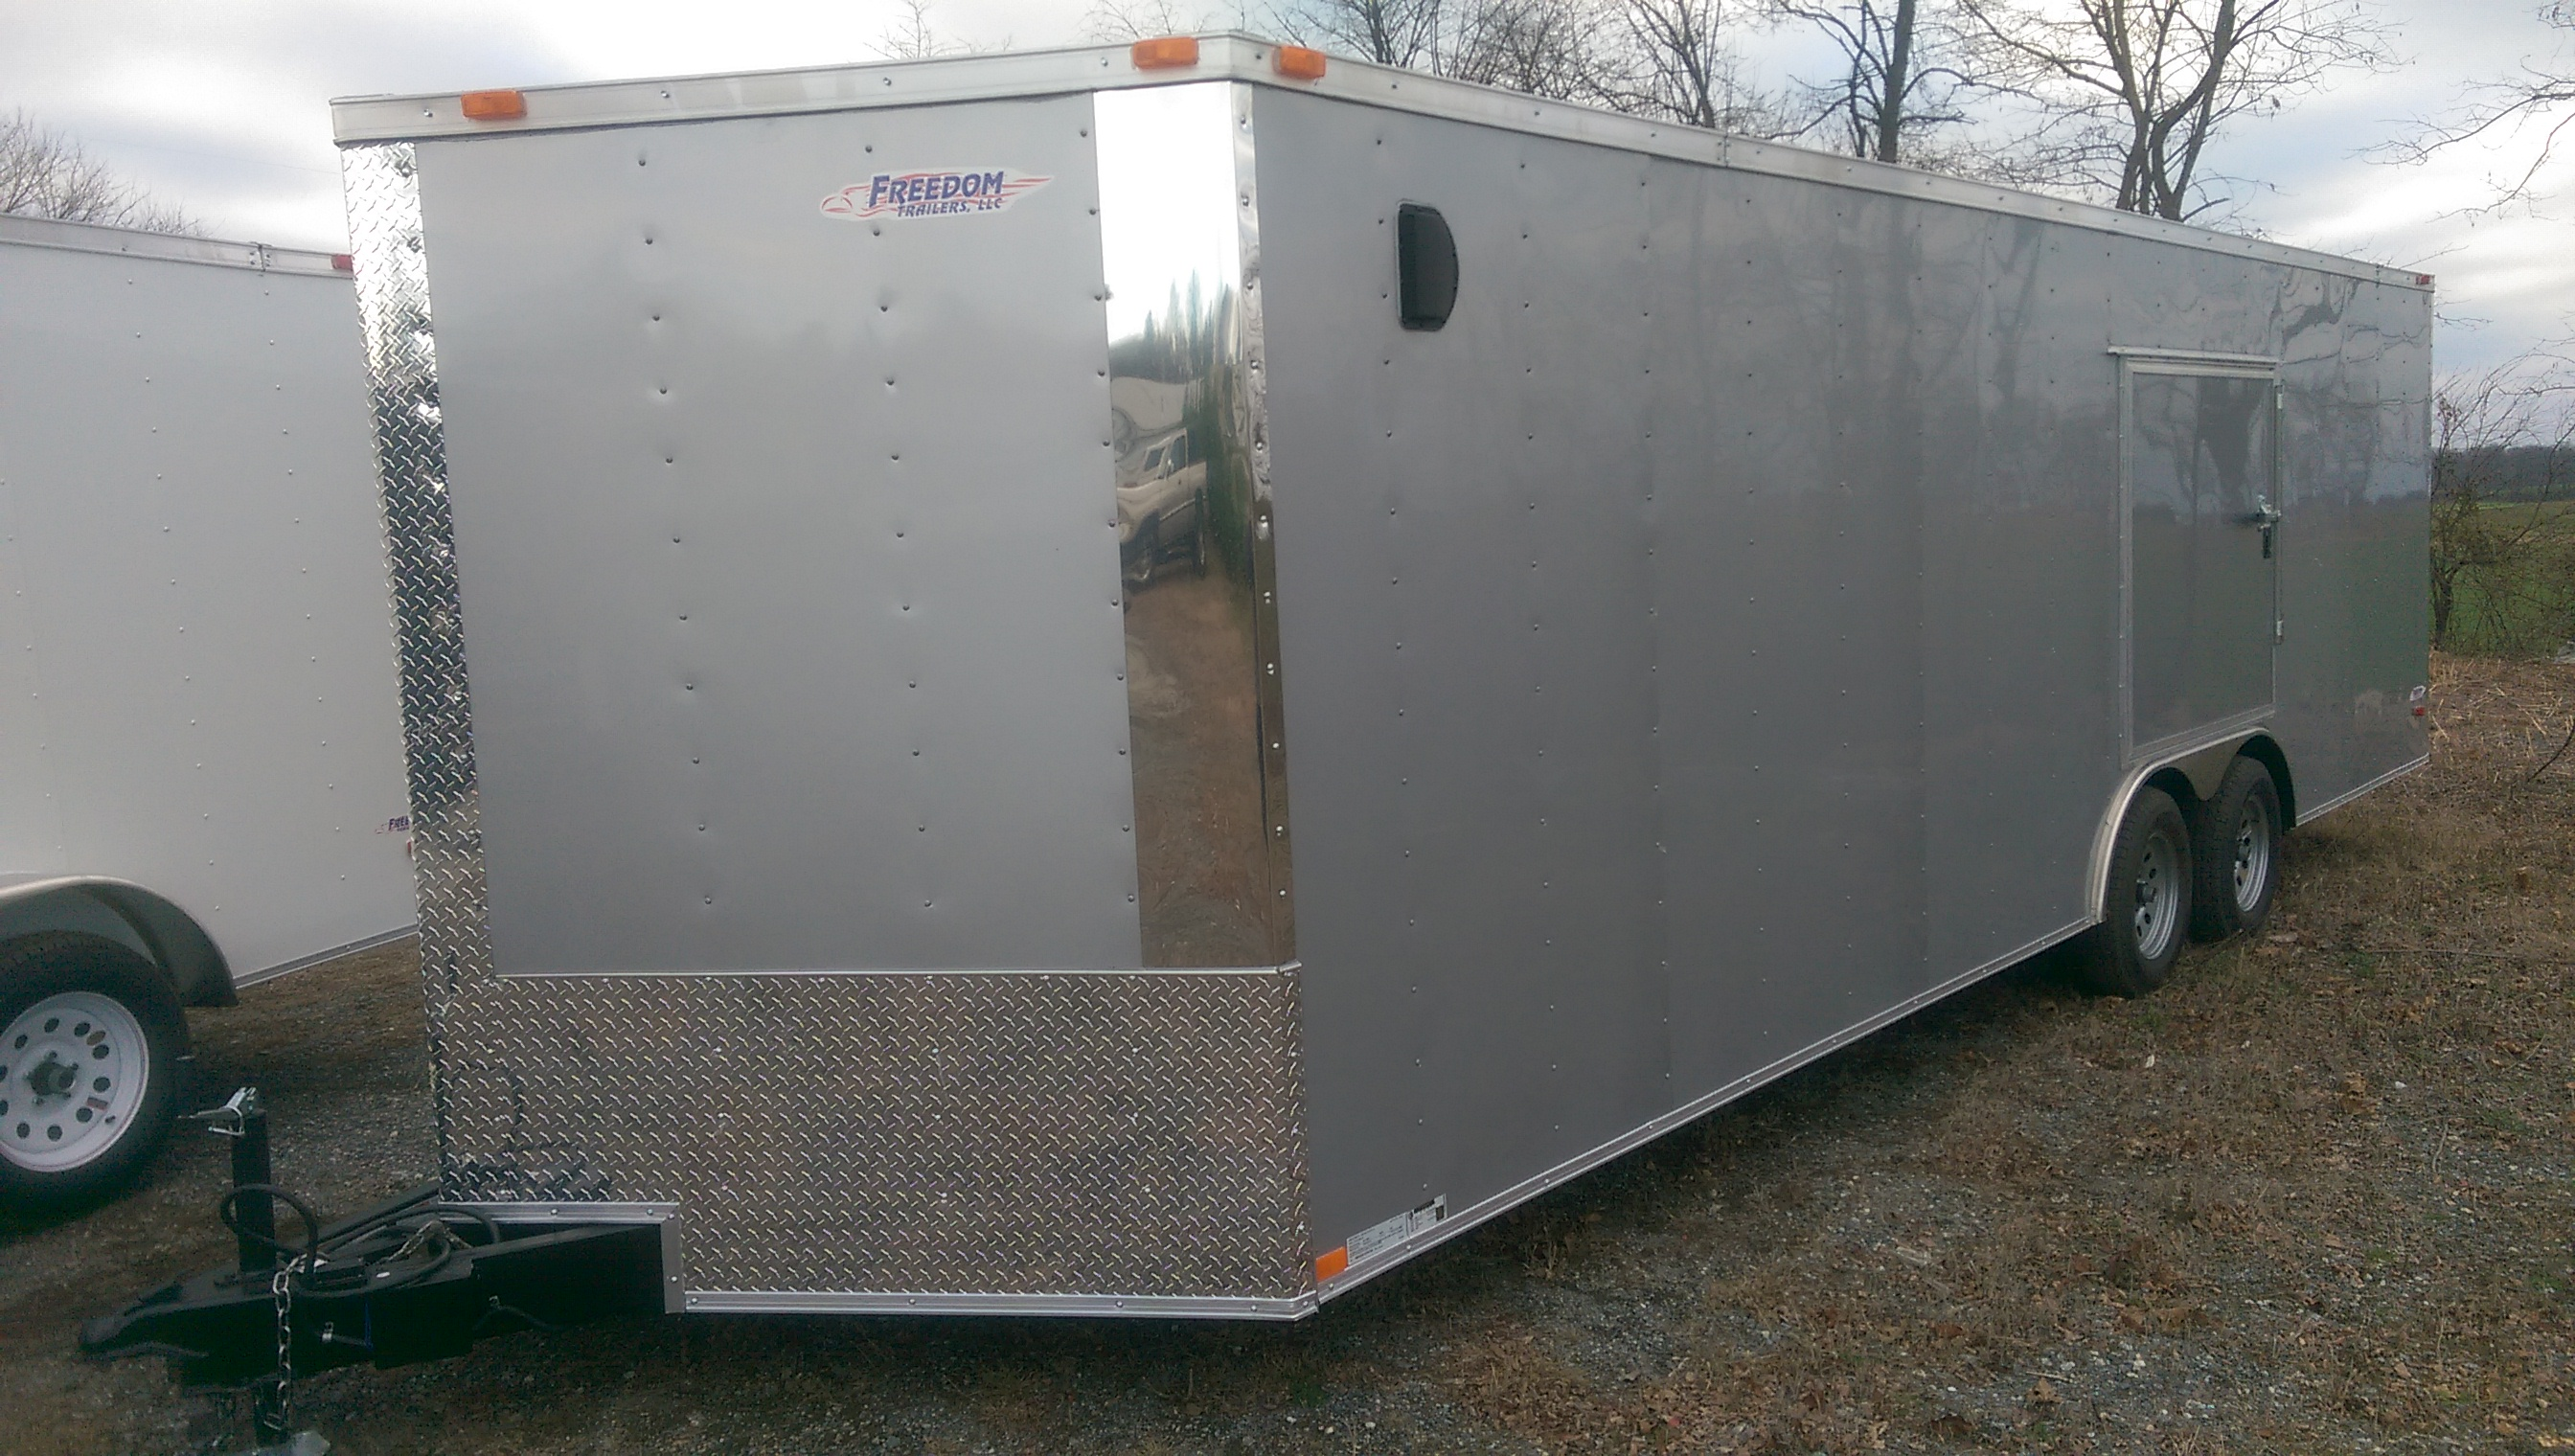 "Quantity: 0  Ramp Rear Door Plywood Flooring 36"" Side Door 54"" Escape Door Rock Guard Interior Height  - 78"" Aluminum Fenders Aluminum Siding Galvalume Steel Roof Interior Lighting 7-Way Plug  <strong>Cash Price: $6,325</strong>  *Full Purchase Price does not include Title Fees and Taxes *3% Credit Card Surcharge added to Credit Card Purchases  	Financing not available on Freedom Trailers"